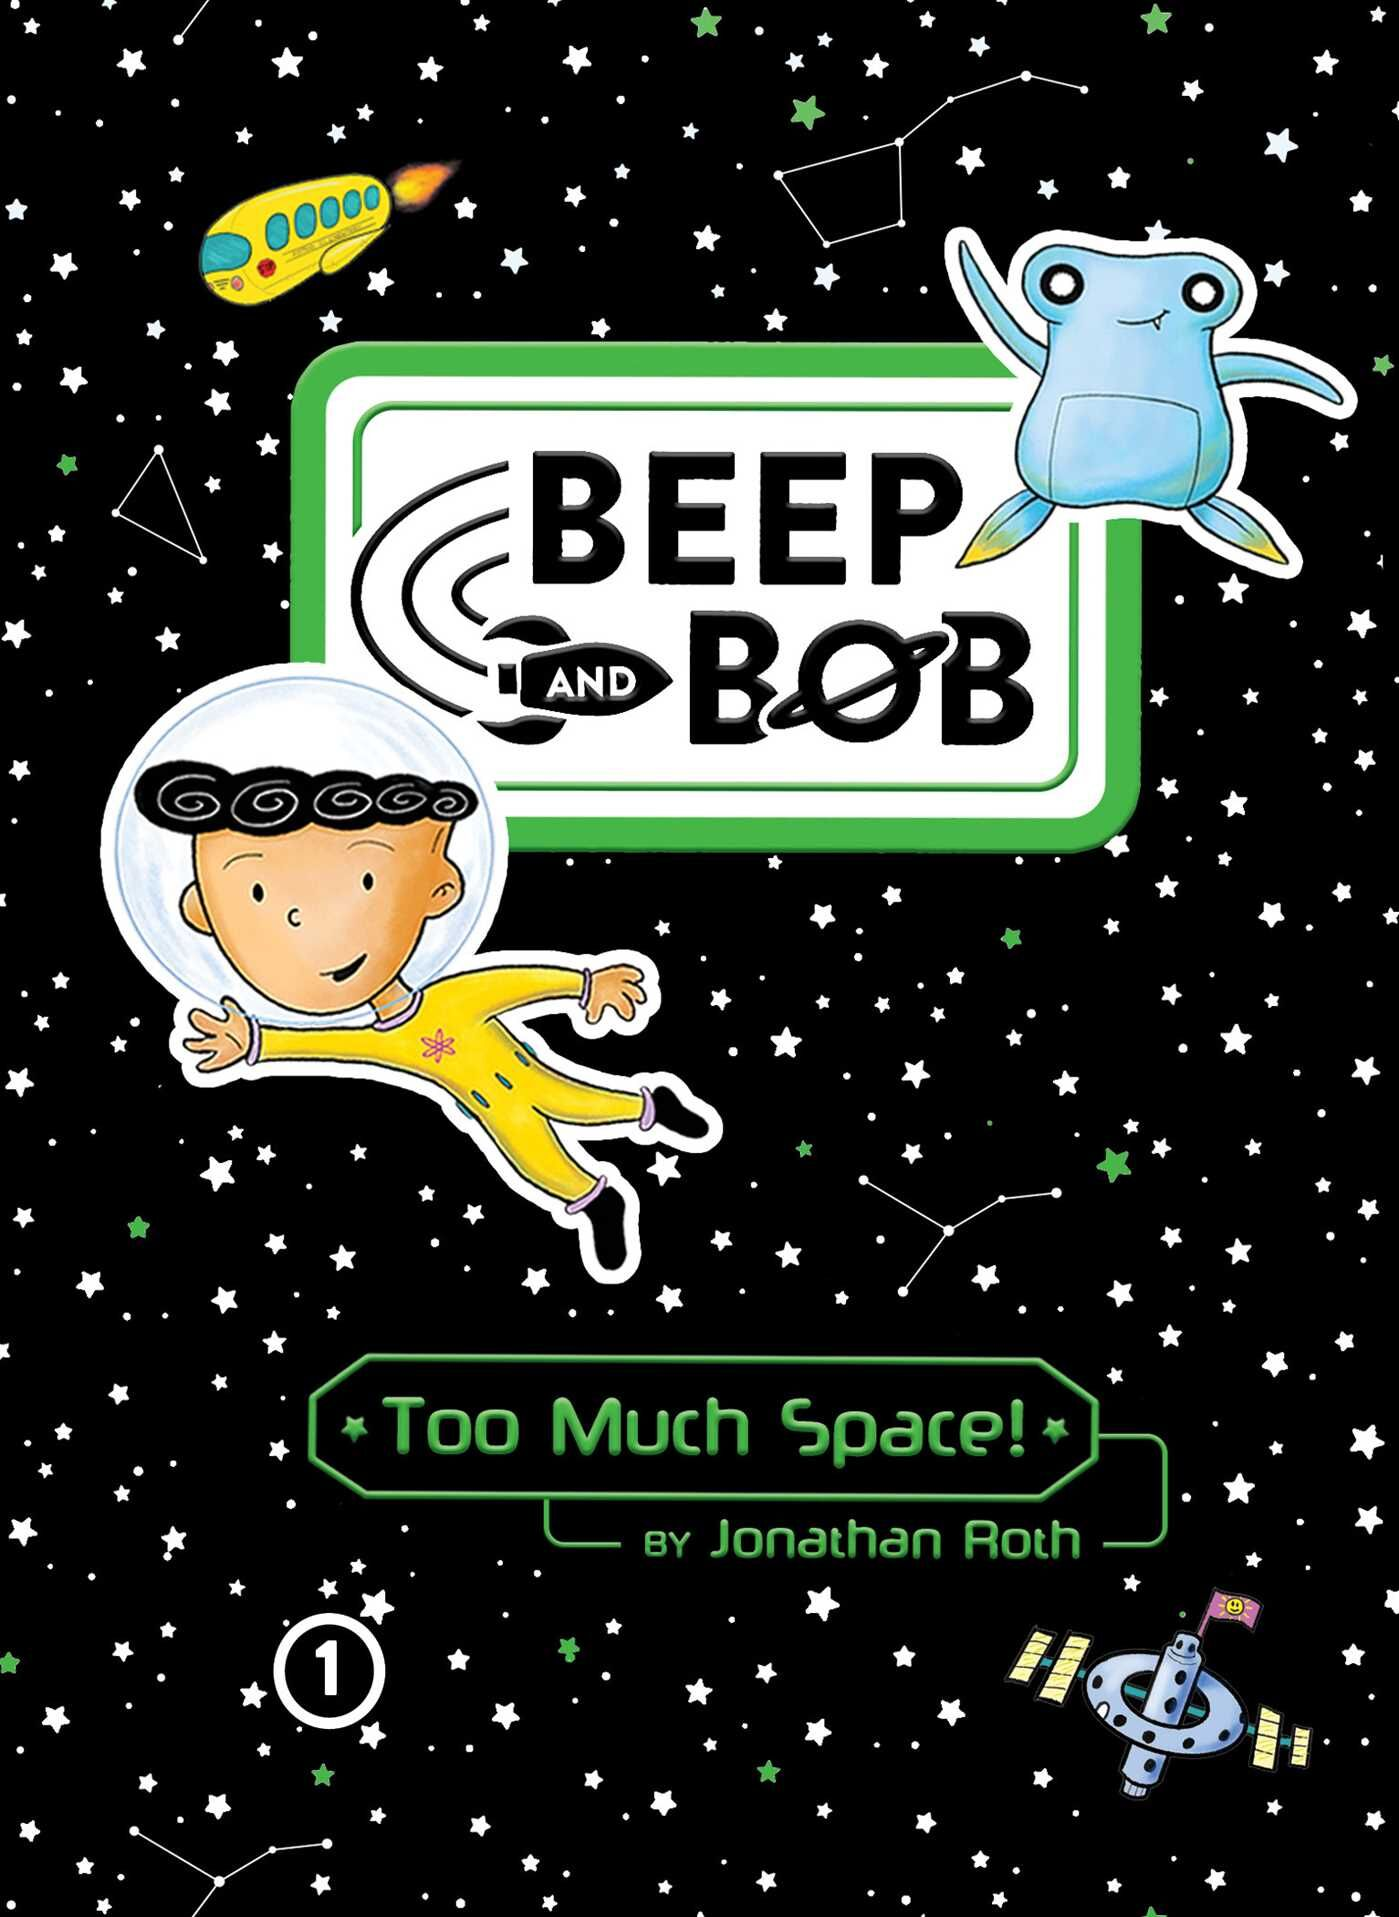 Beep and Bob: Too Much Space